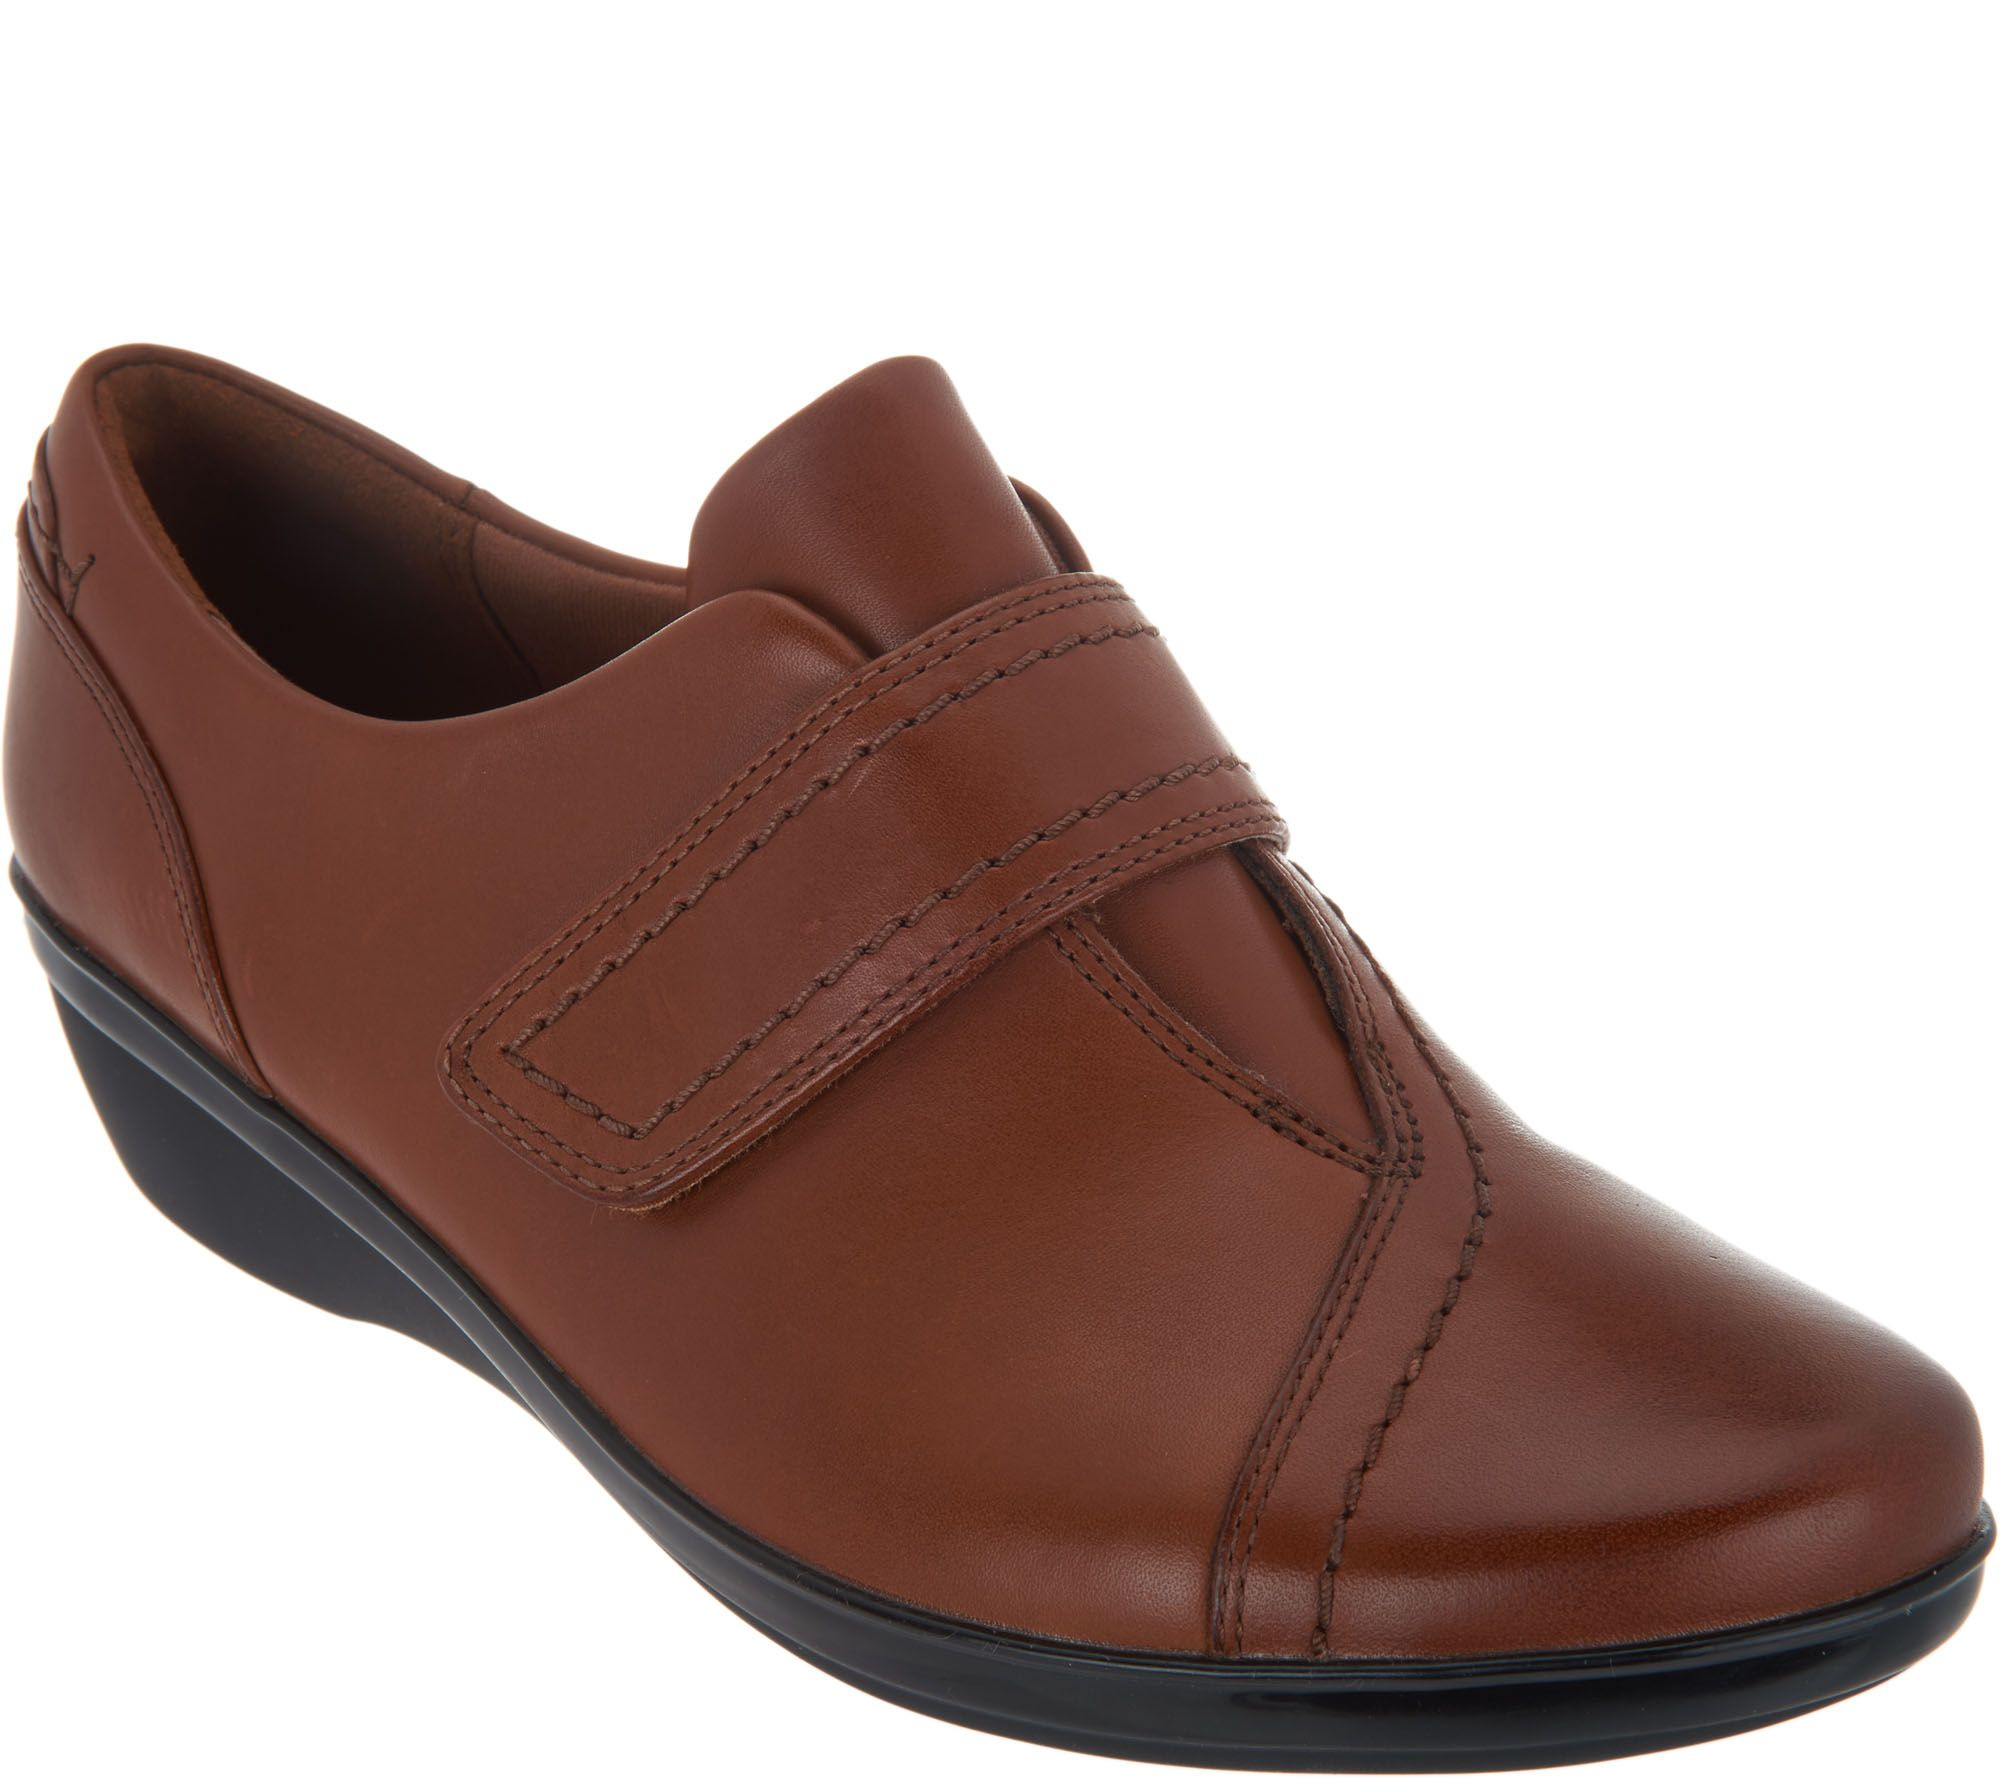 f3d0292b079 Clarks Leather Monk Strap Shoes - Everlay Dixie - Page 1 — QVC.com